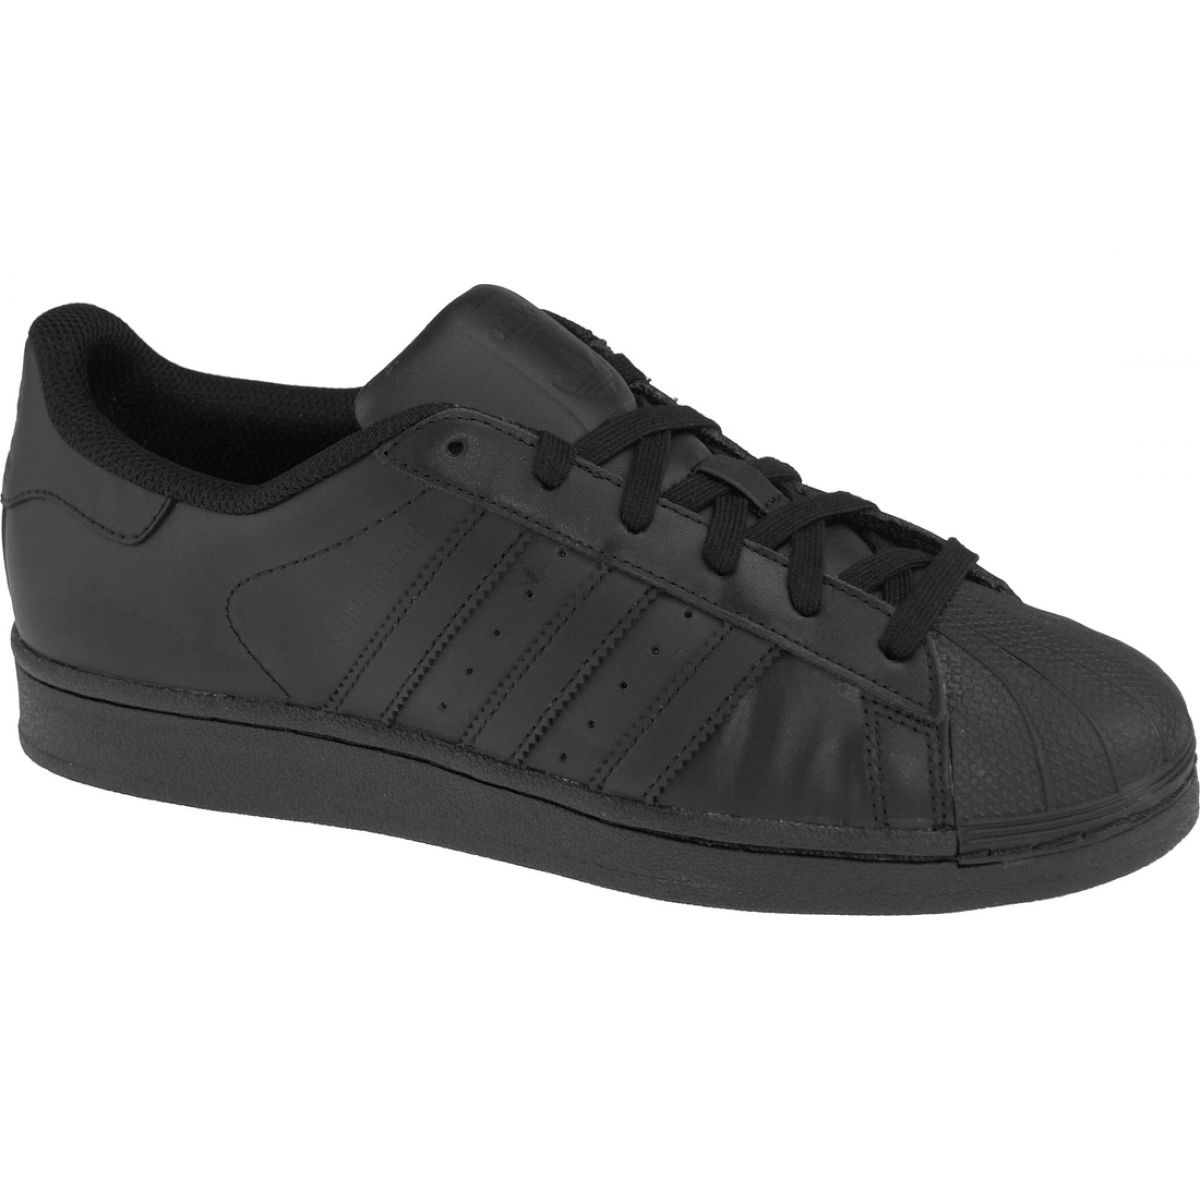 Schwarz Adidas Superstar J Foundation Jr B25724 Schuhe